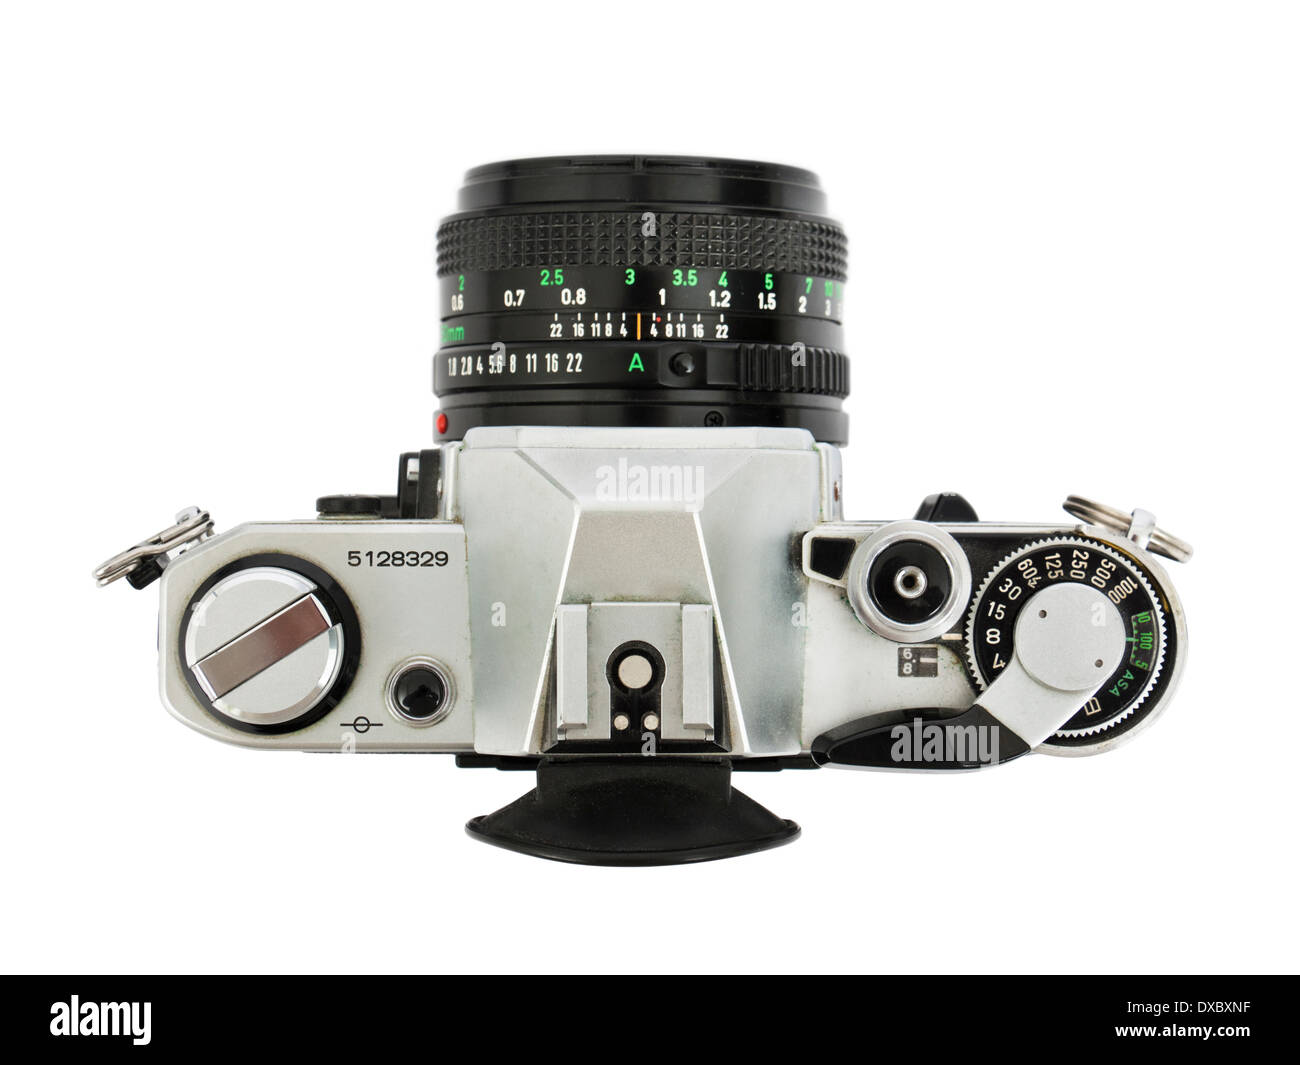 1970's Canon AE-1 vintage 35mm SLR film camera with FD 50mm f/1.8 manual focus lens - Stock Image